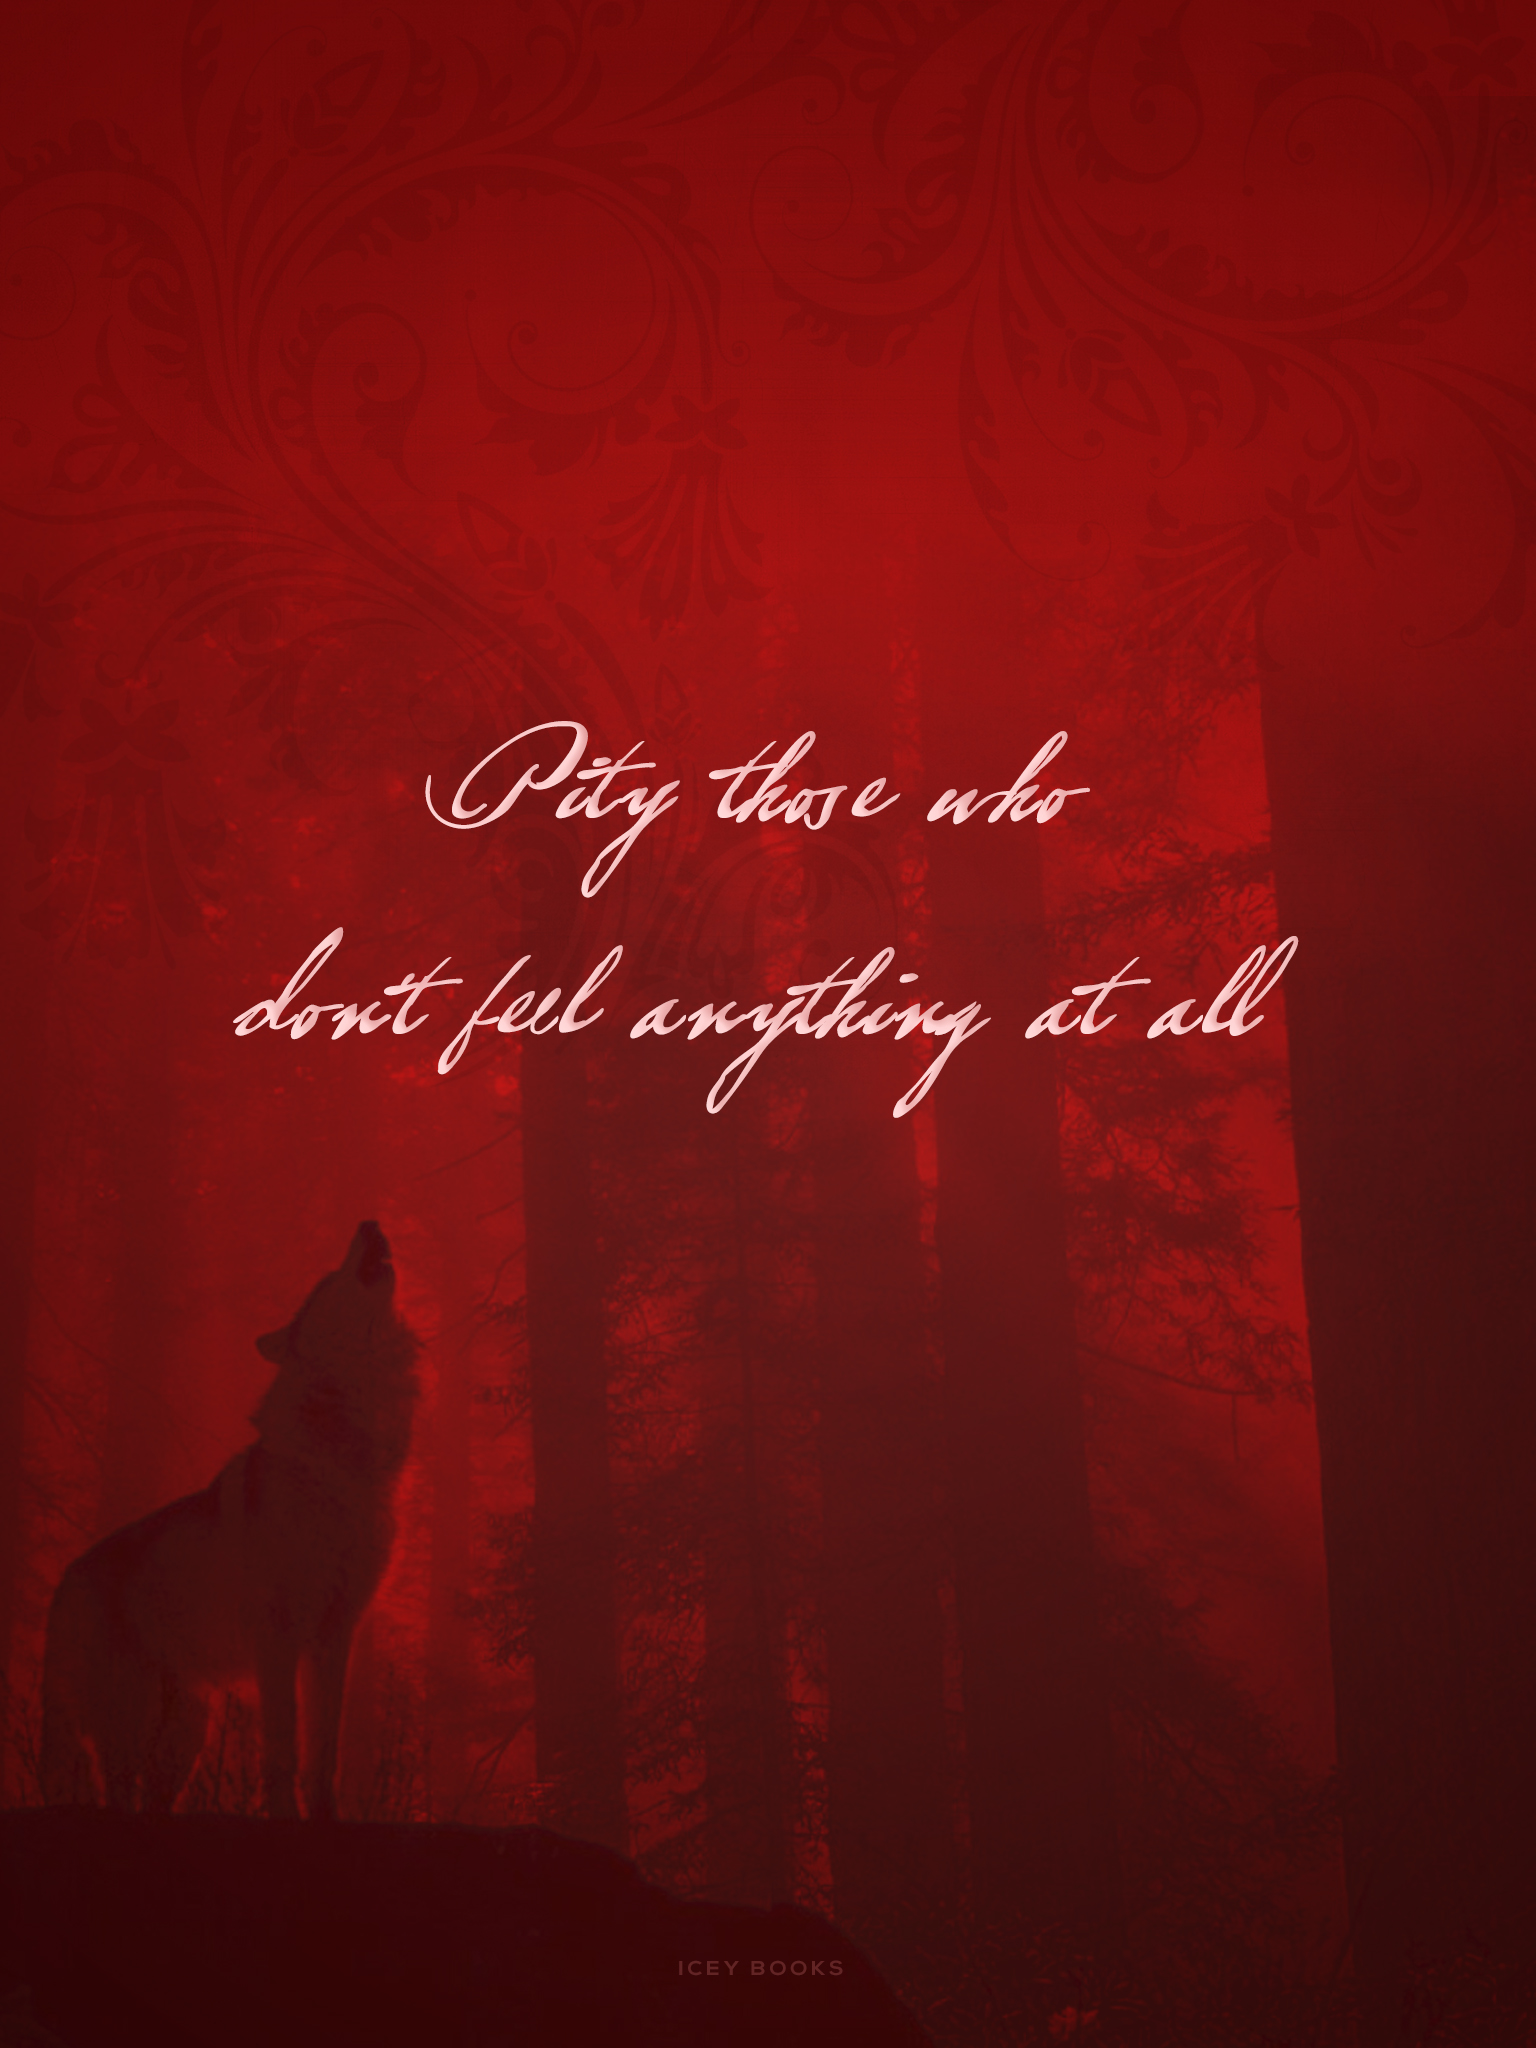 Quote candy 31 download a wallpaper for a court of for Window quotes goodreads